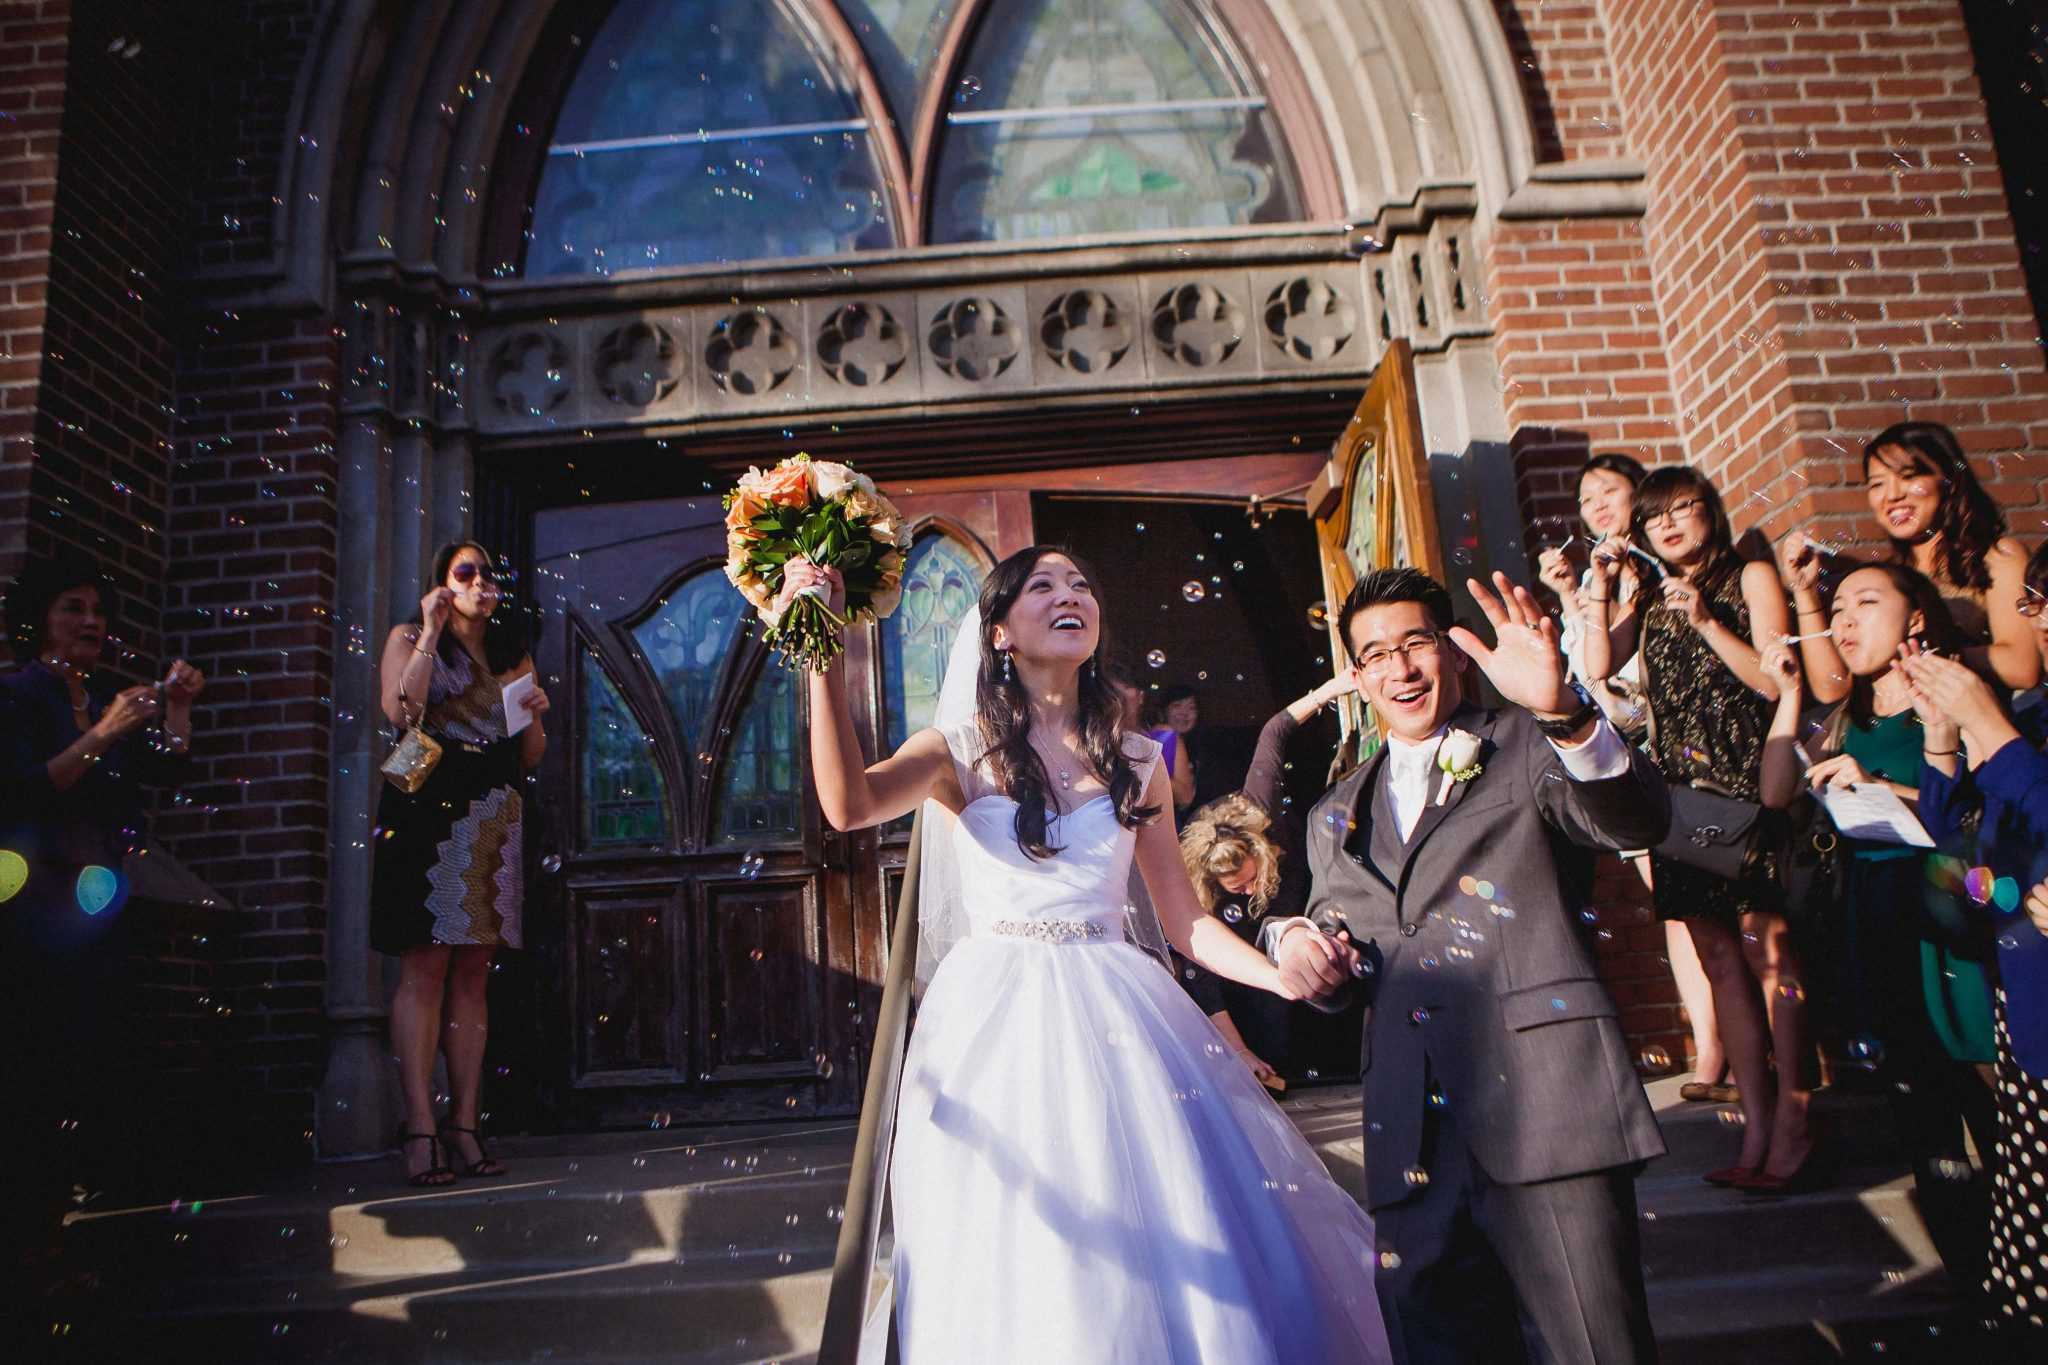 Bride and Groom walk through bubbles at the end of the wedding ceremony